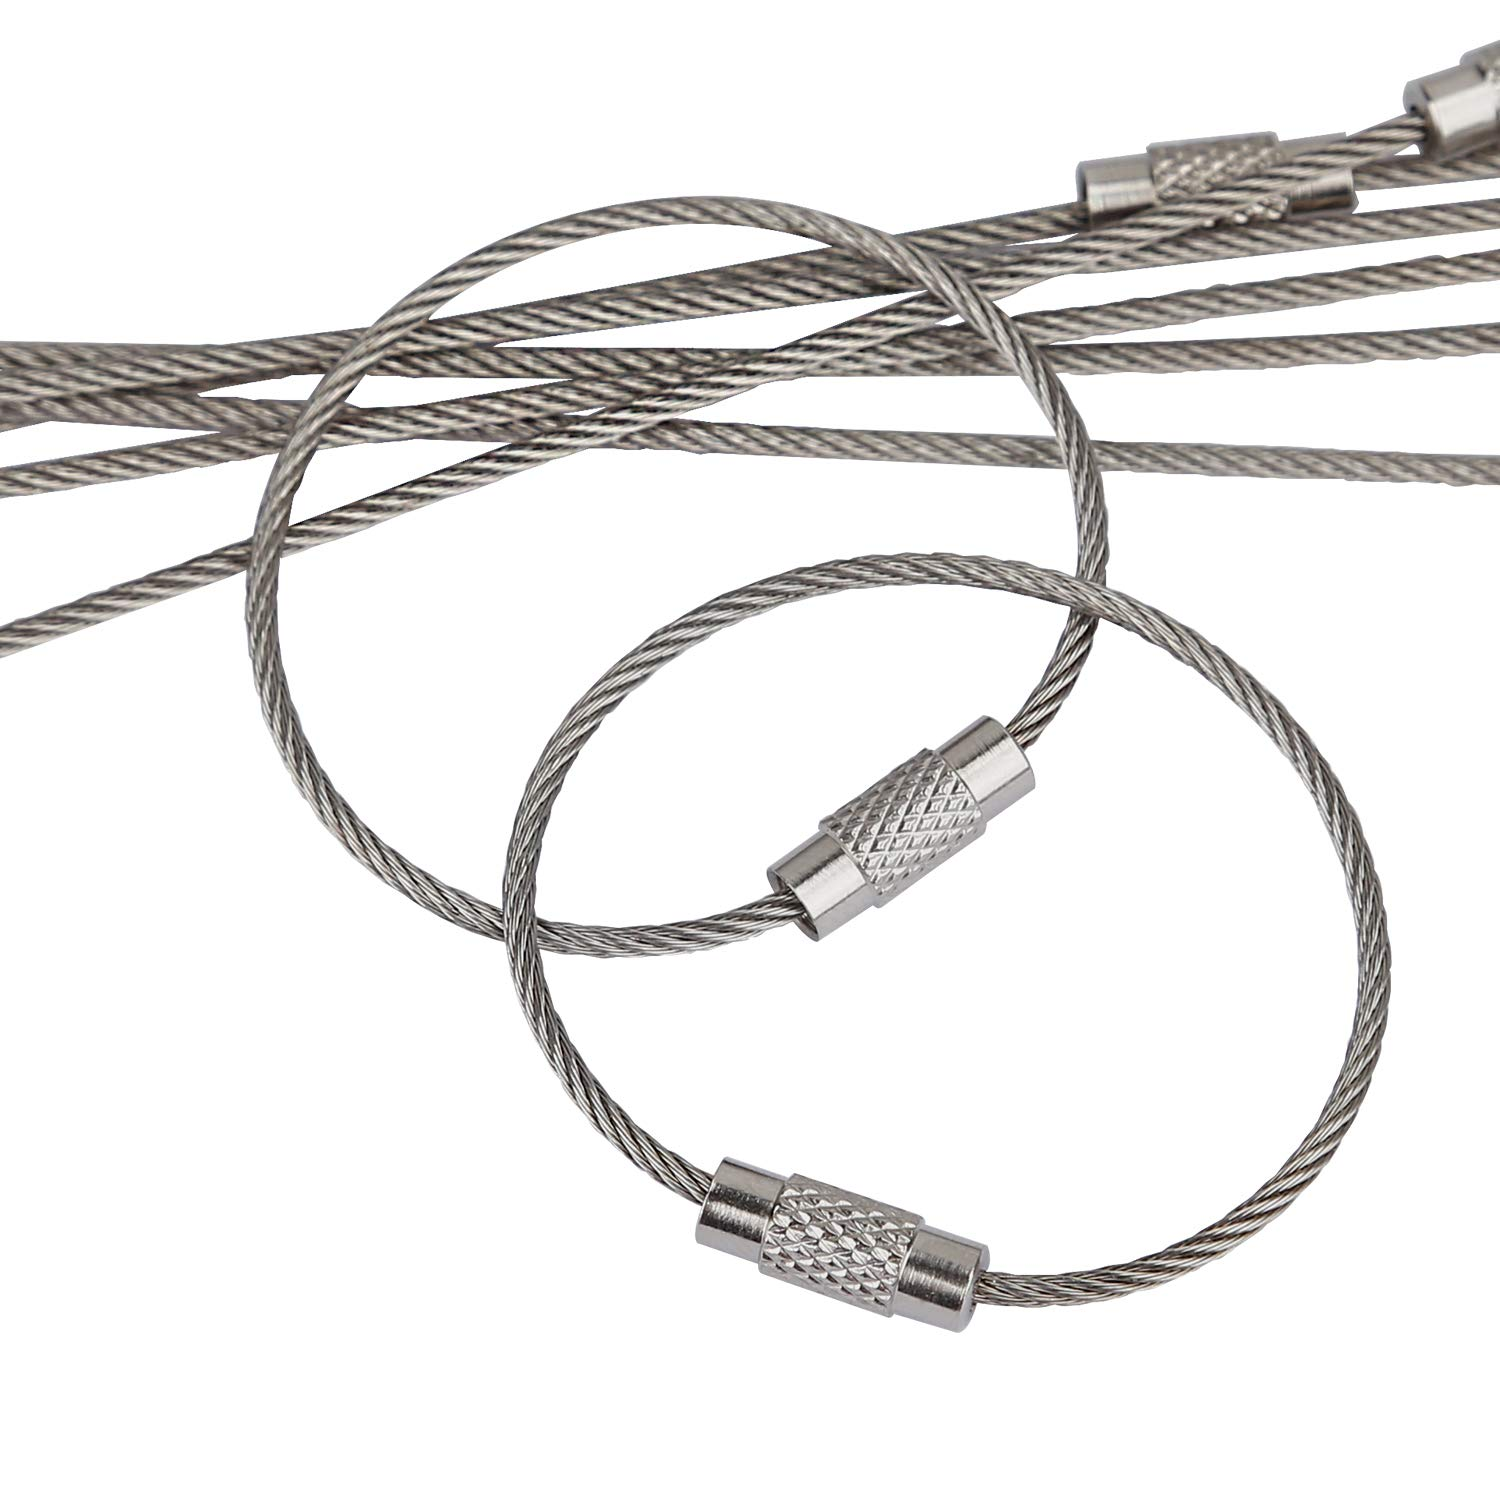 Amazon.com   Pawfly 20 pcs Wire Keychain Cable 4 Inch Stainless Steel Key  Ring Loop for Outdoor Hiking   Office Products 2469c354a